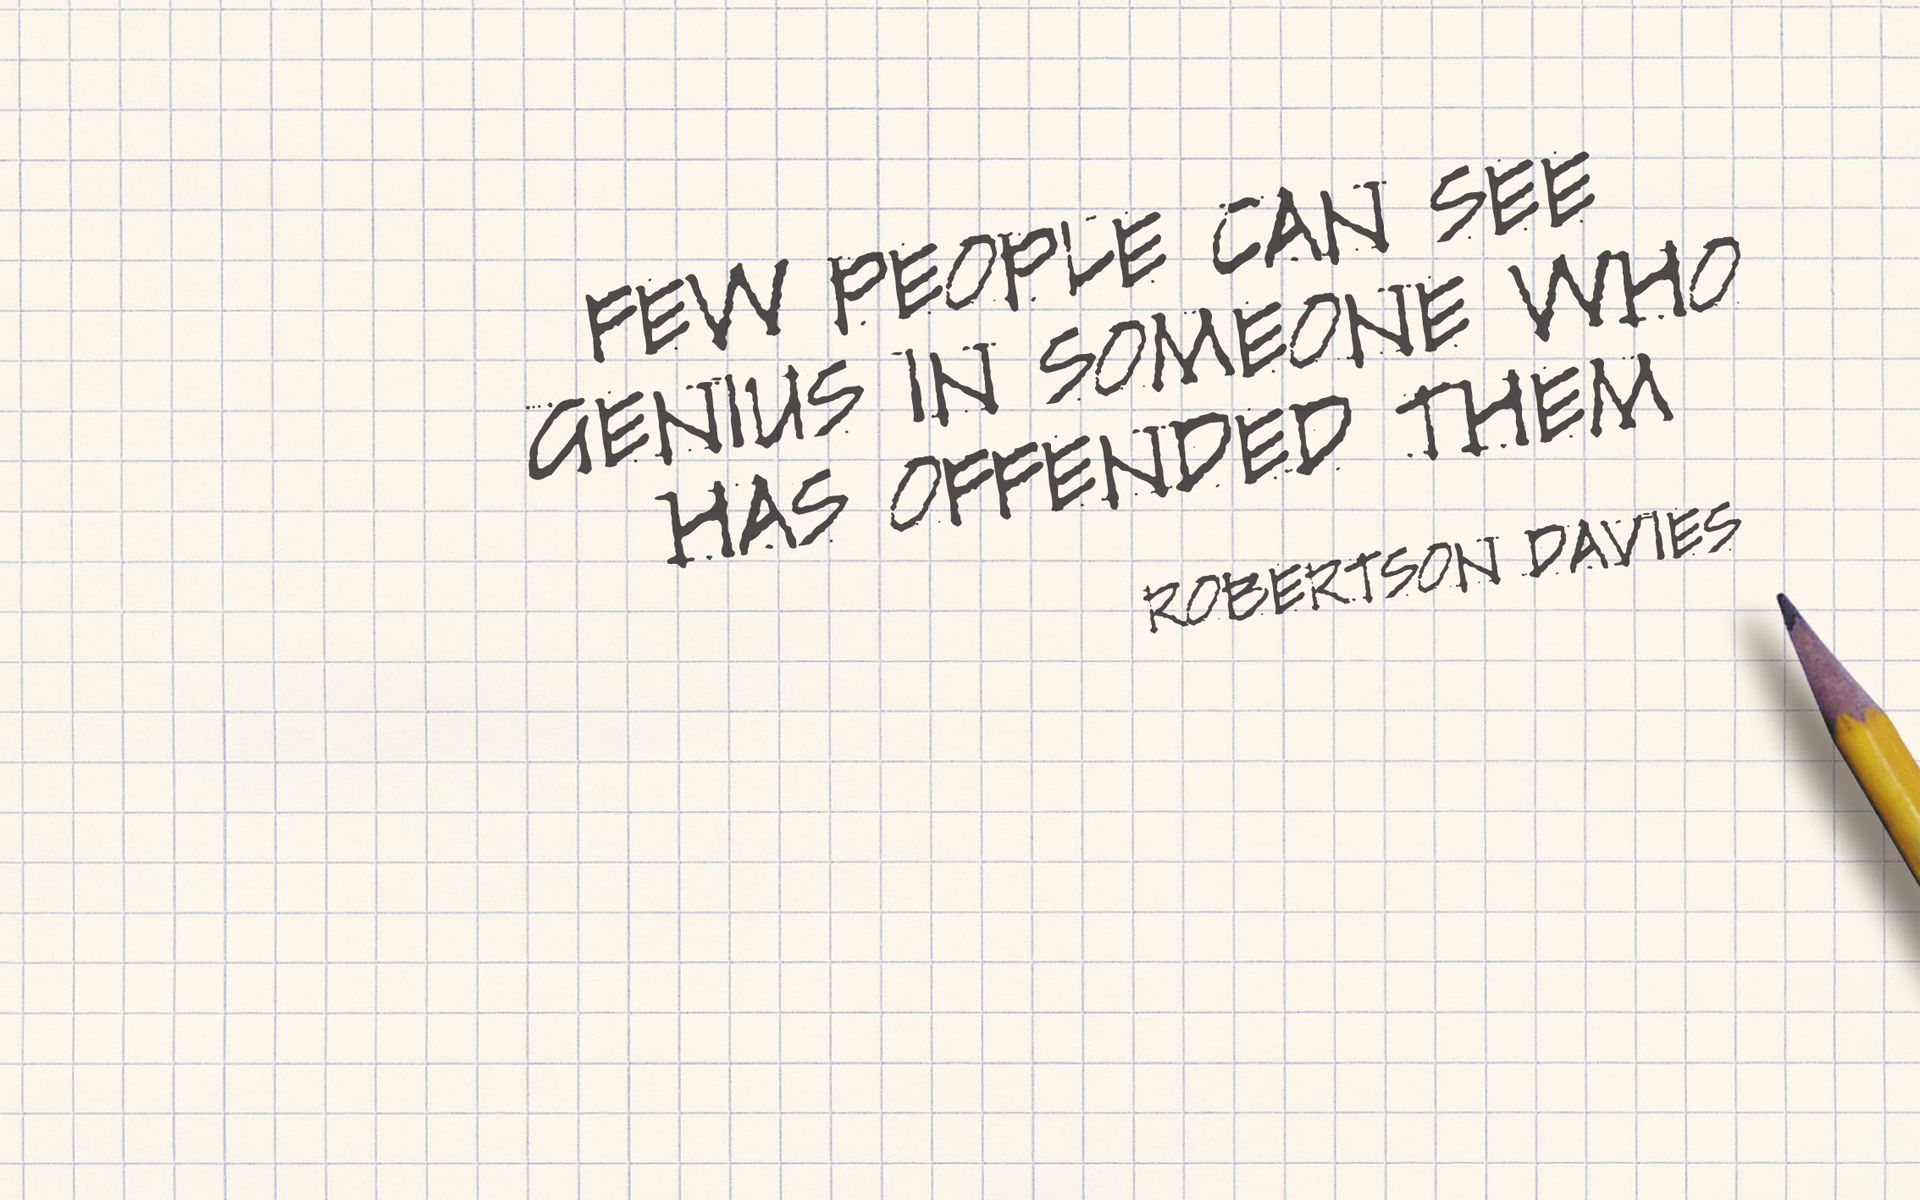 Few people can see genius in someone who has offended them. – Robertson Davies [1920 x 1200]